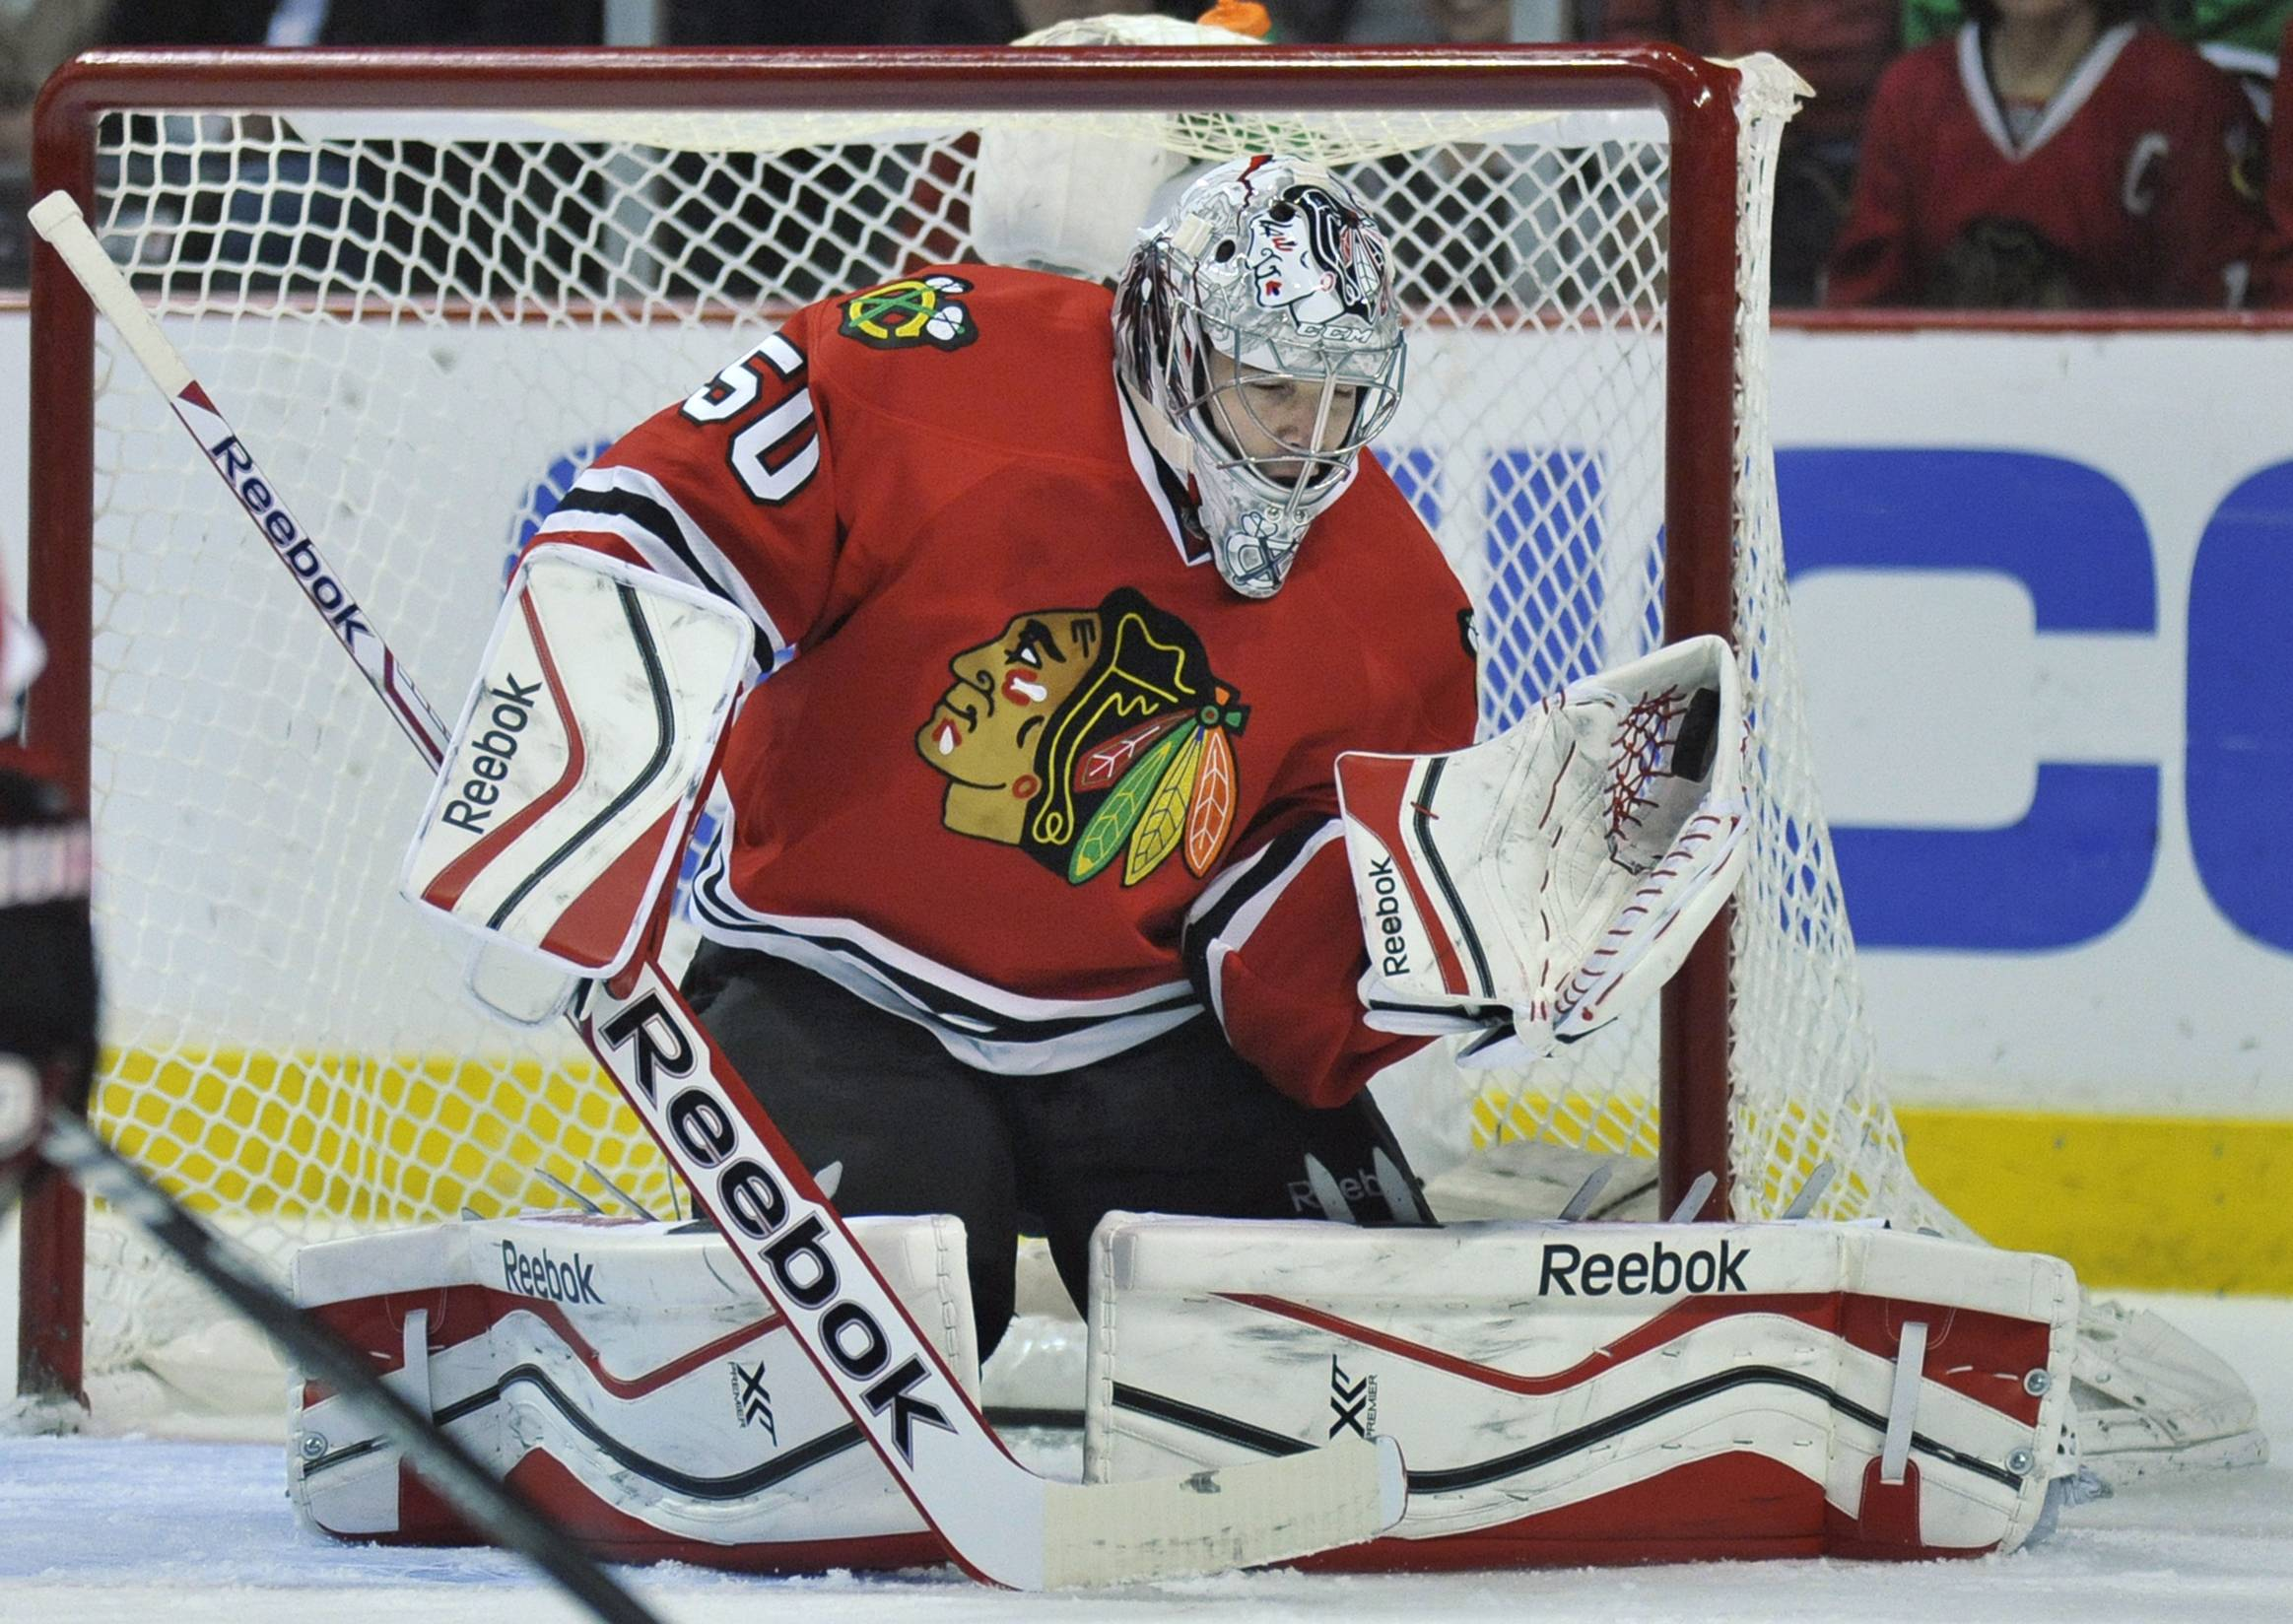 Chicago Blackhawks goalie Corey Crawford makes a save during the first period of an NHL hockey game Wednesday against the St. Louis Blues in Chicago. The Blackhawks would go on to win 4-0.